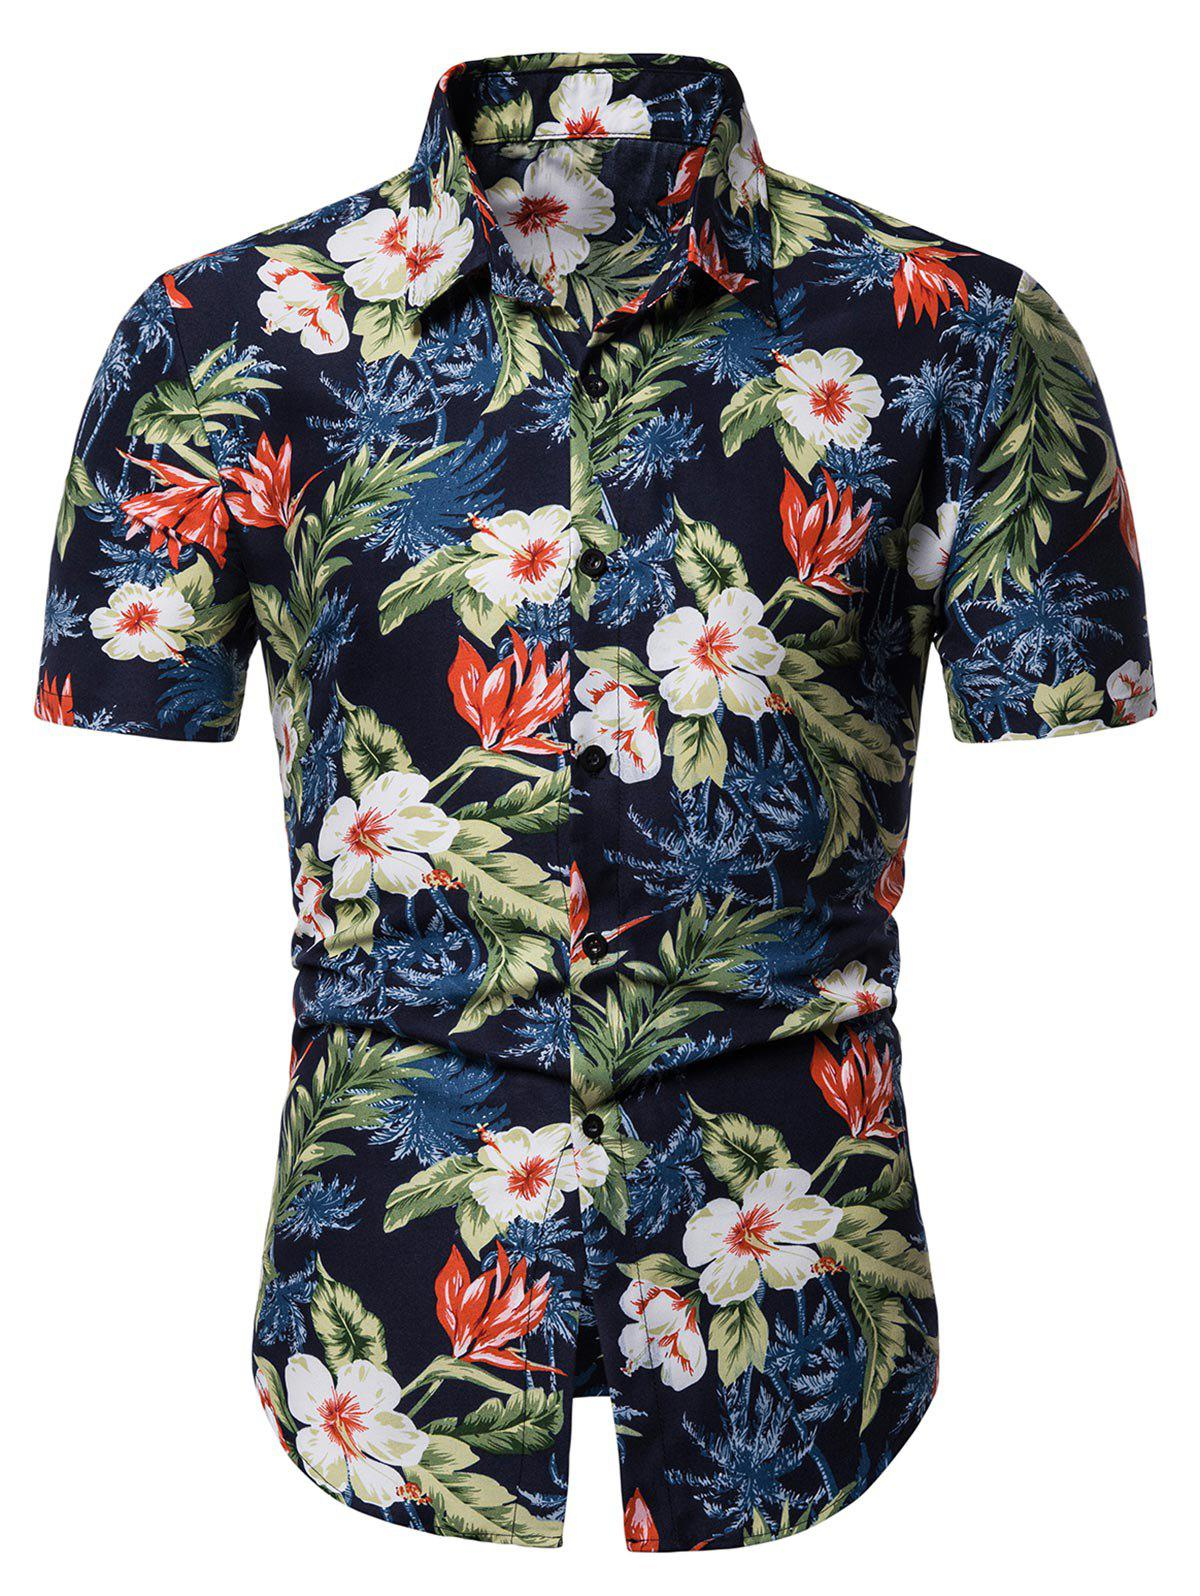 Fancy Flower Print Leisure Short Sleeves Shirt